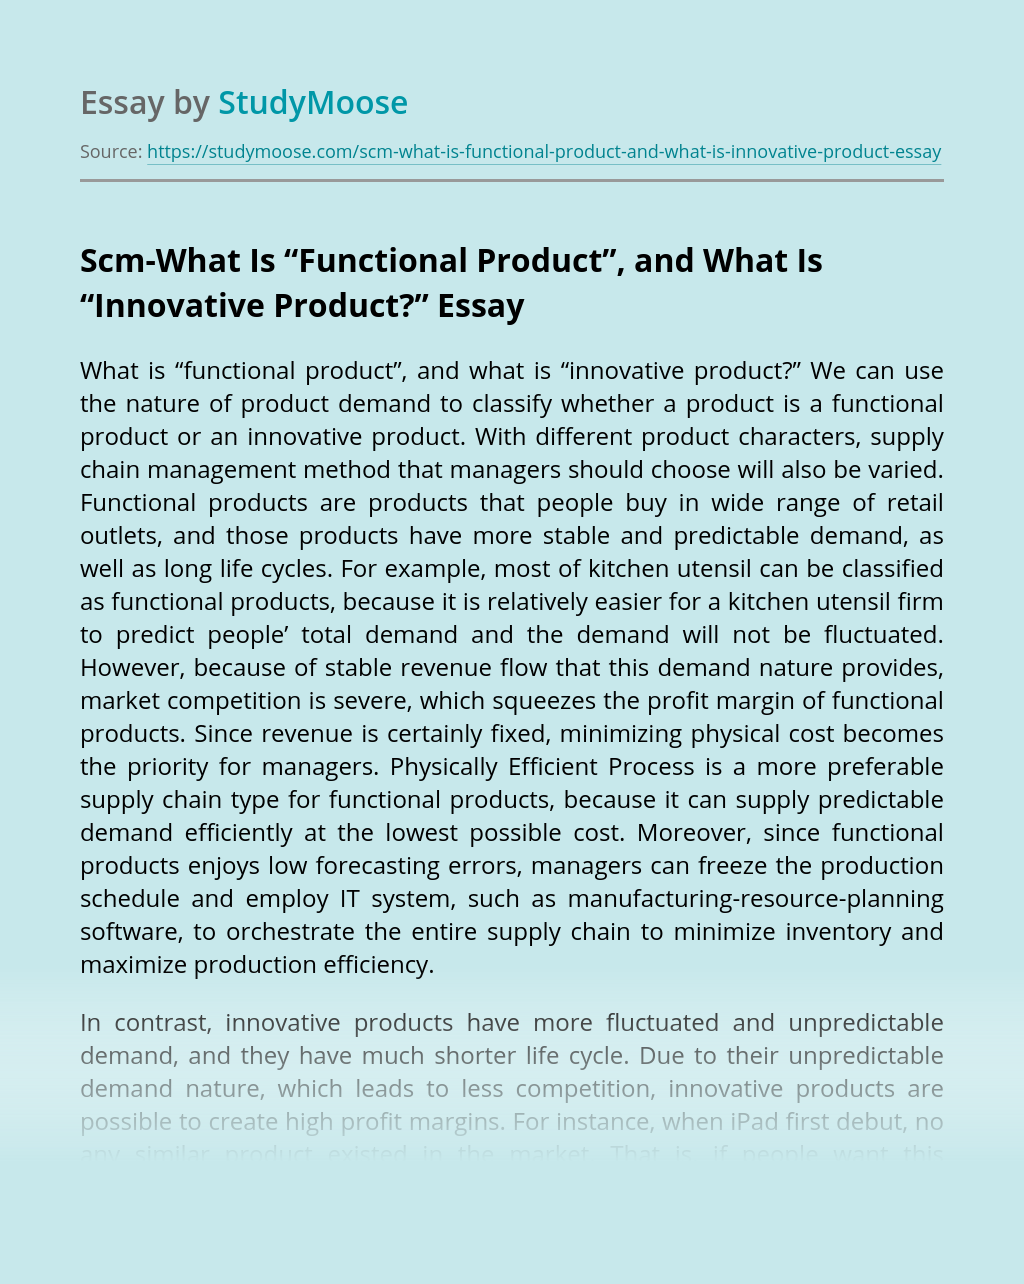 """Scm-What Is """"Functional Product"""", and What Is """"Innovative Product?"""""""